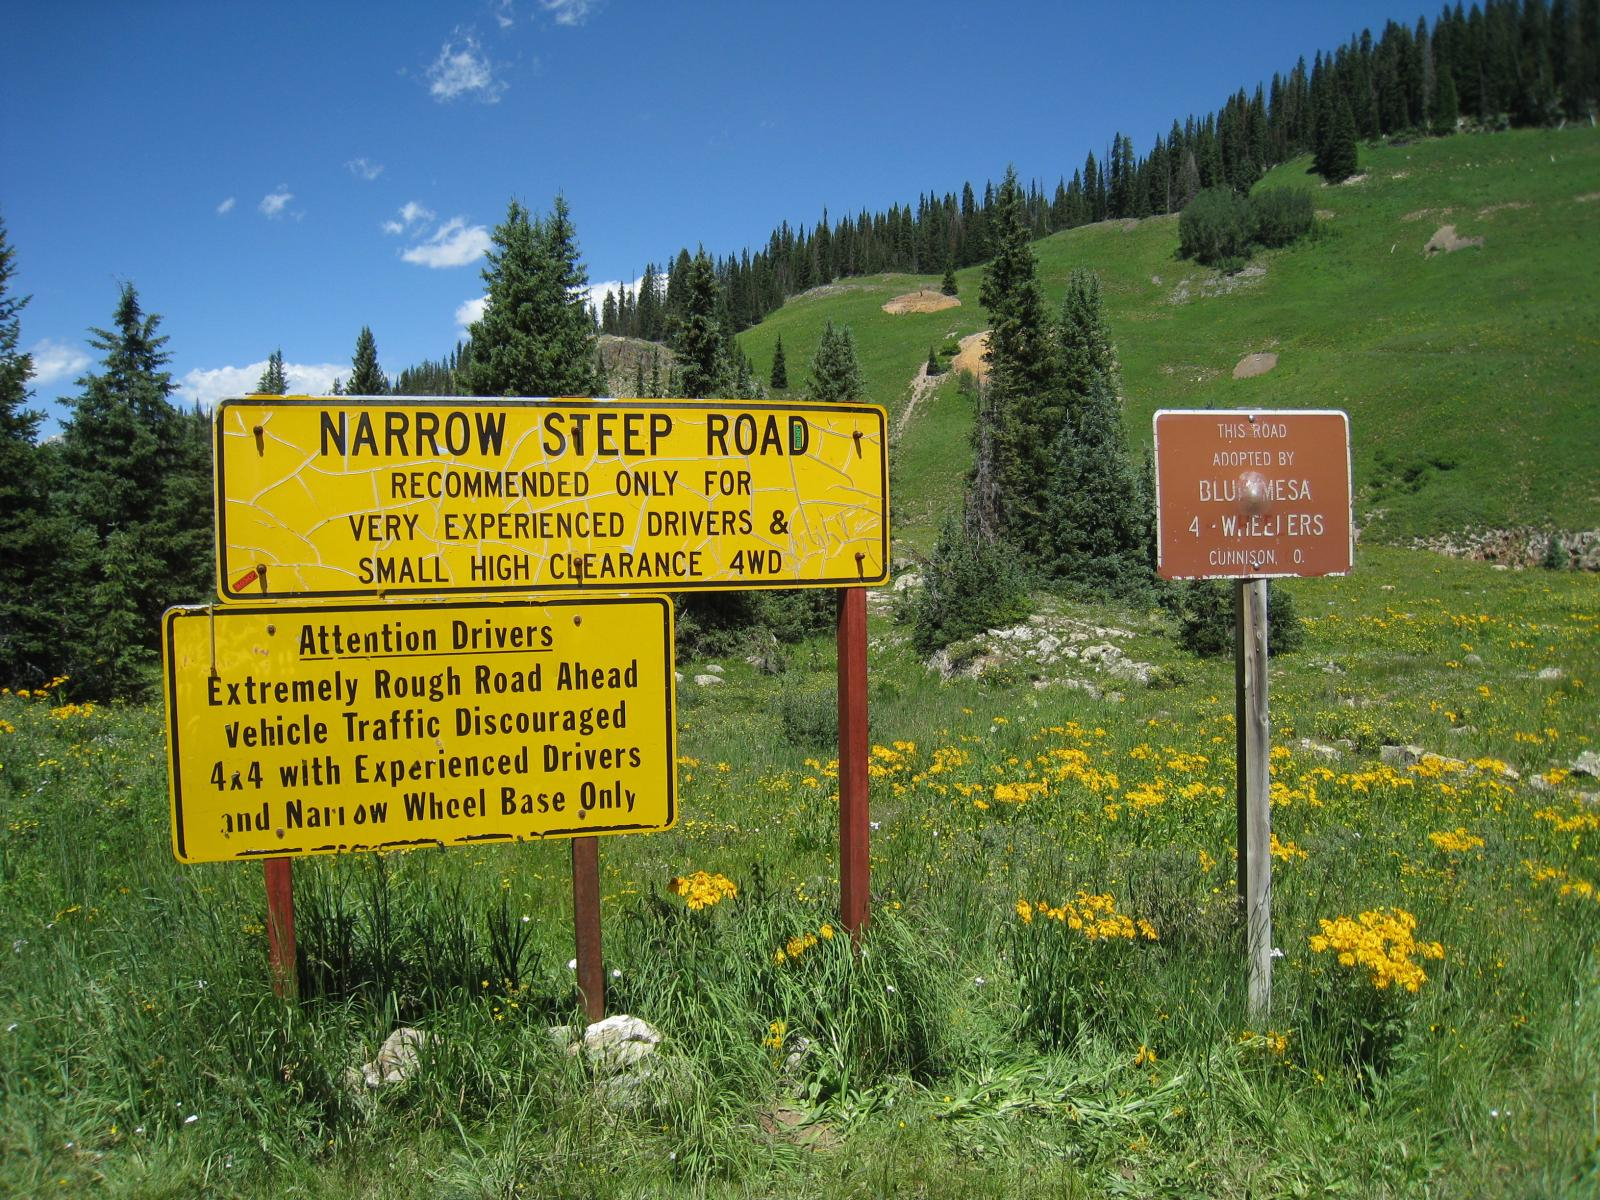 Signs and wildflowers